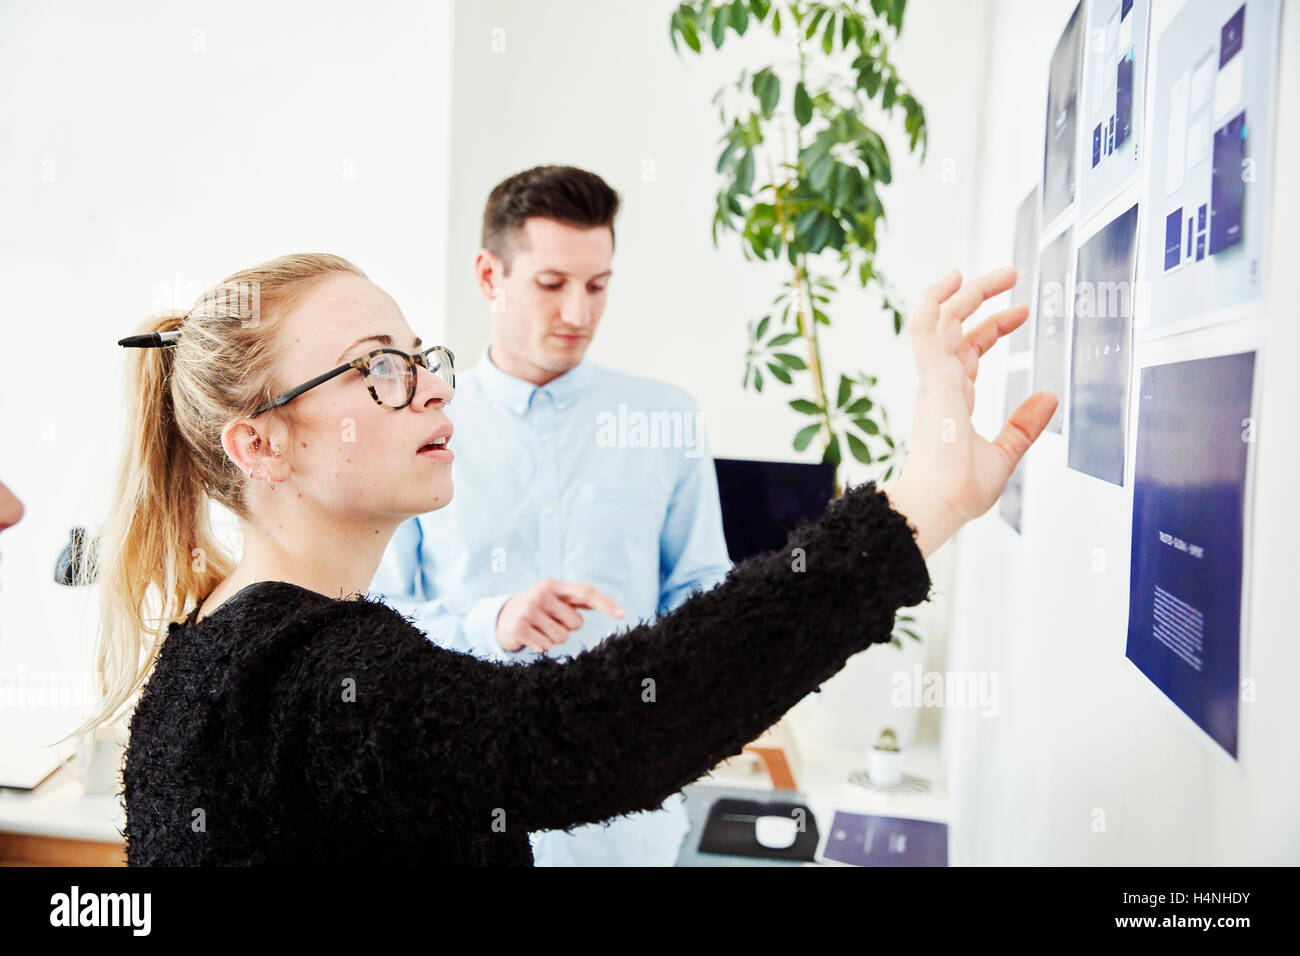 Two people looking at printed plans stuck on a wall, project management and discussions. Stock Photo